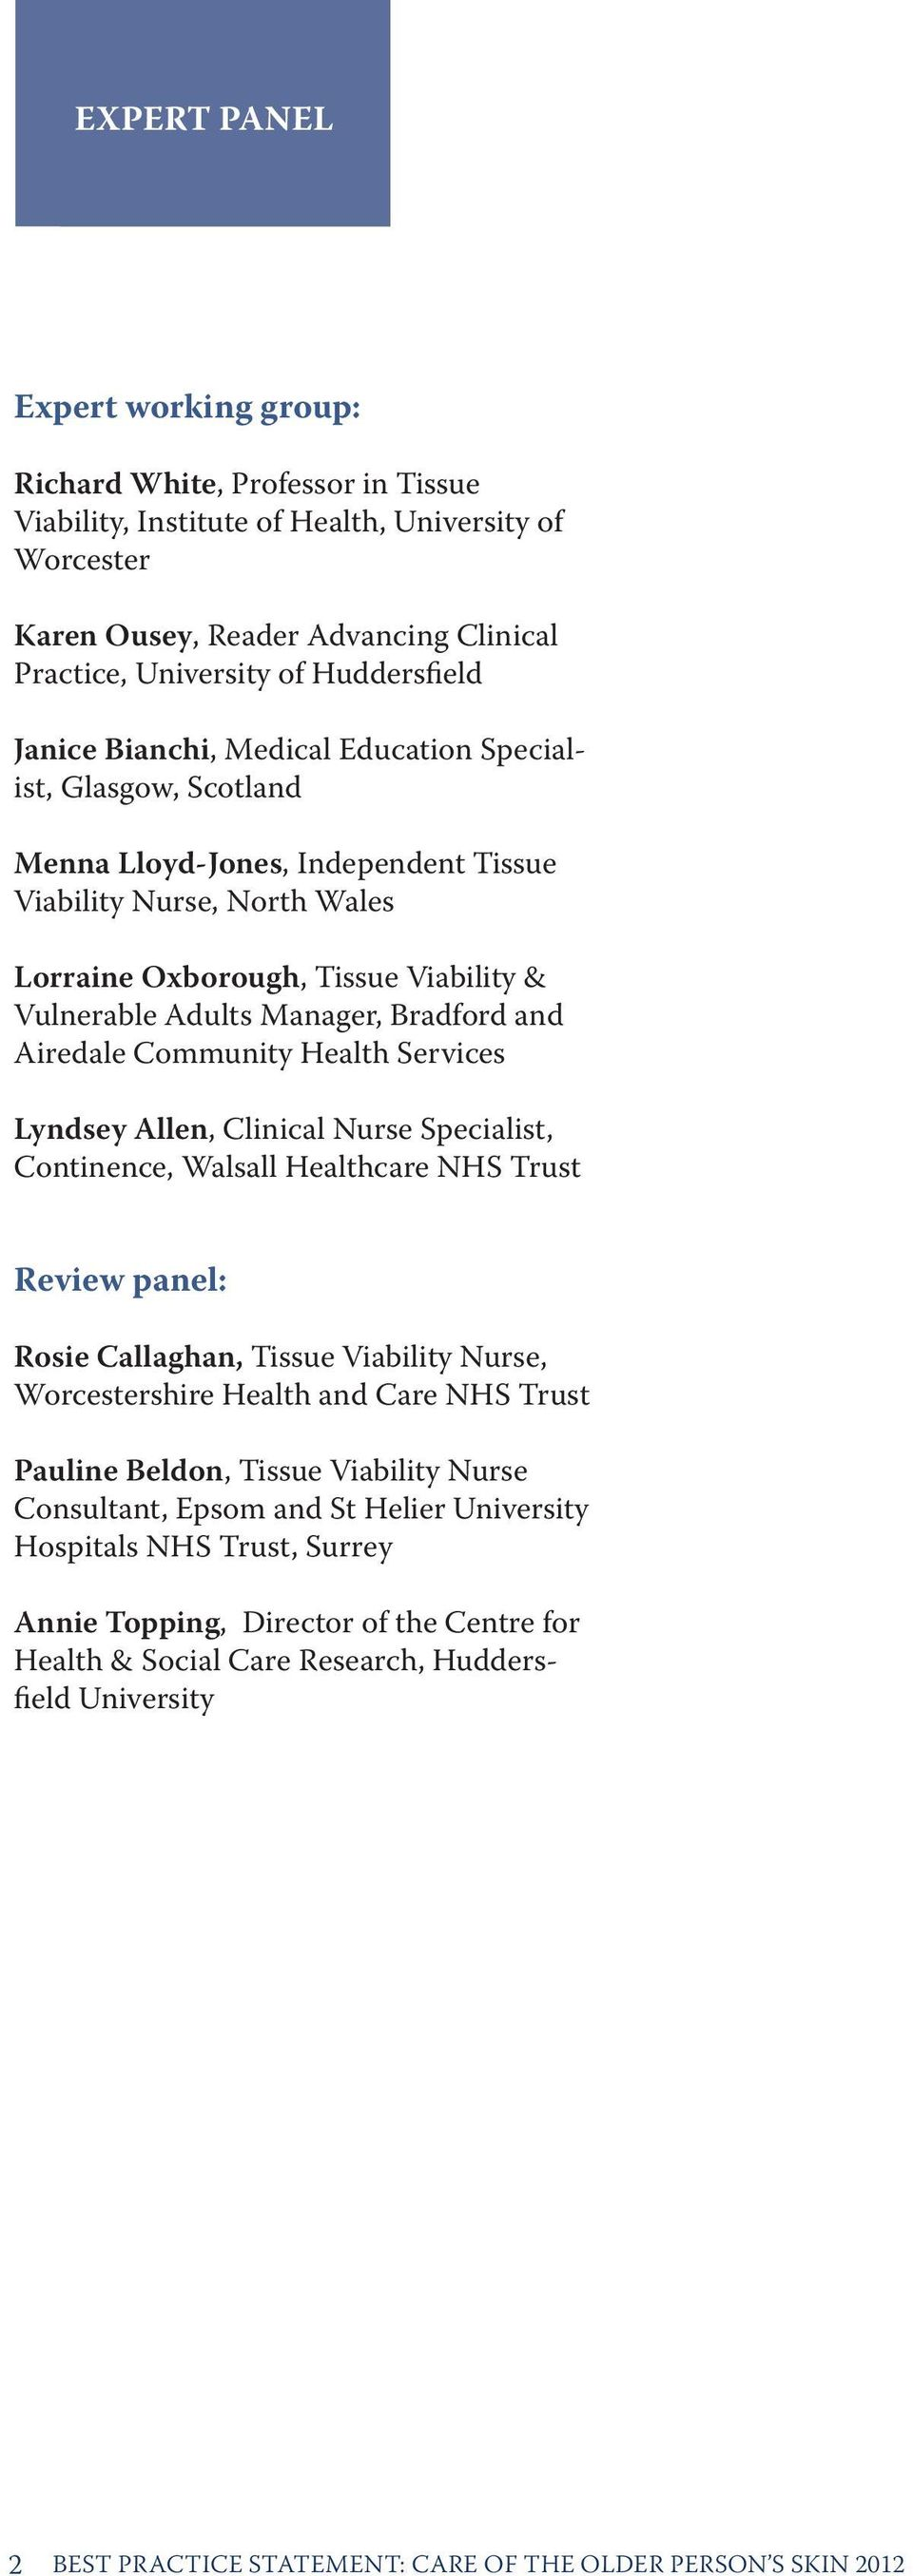 Adults Manager, Bradford and Airedale Community Health Services Lyndsey Allen, Clinical Nurse Specialist, Continence, Walsall Healthcare NHS Trust Review panel: Rosie Callaghan, Tissue Viability